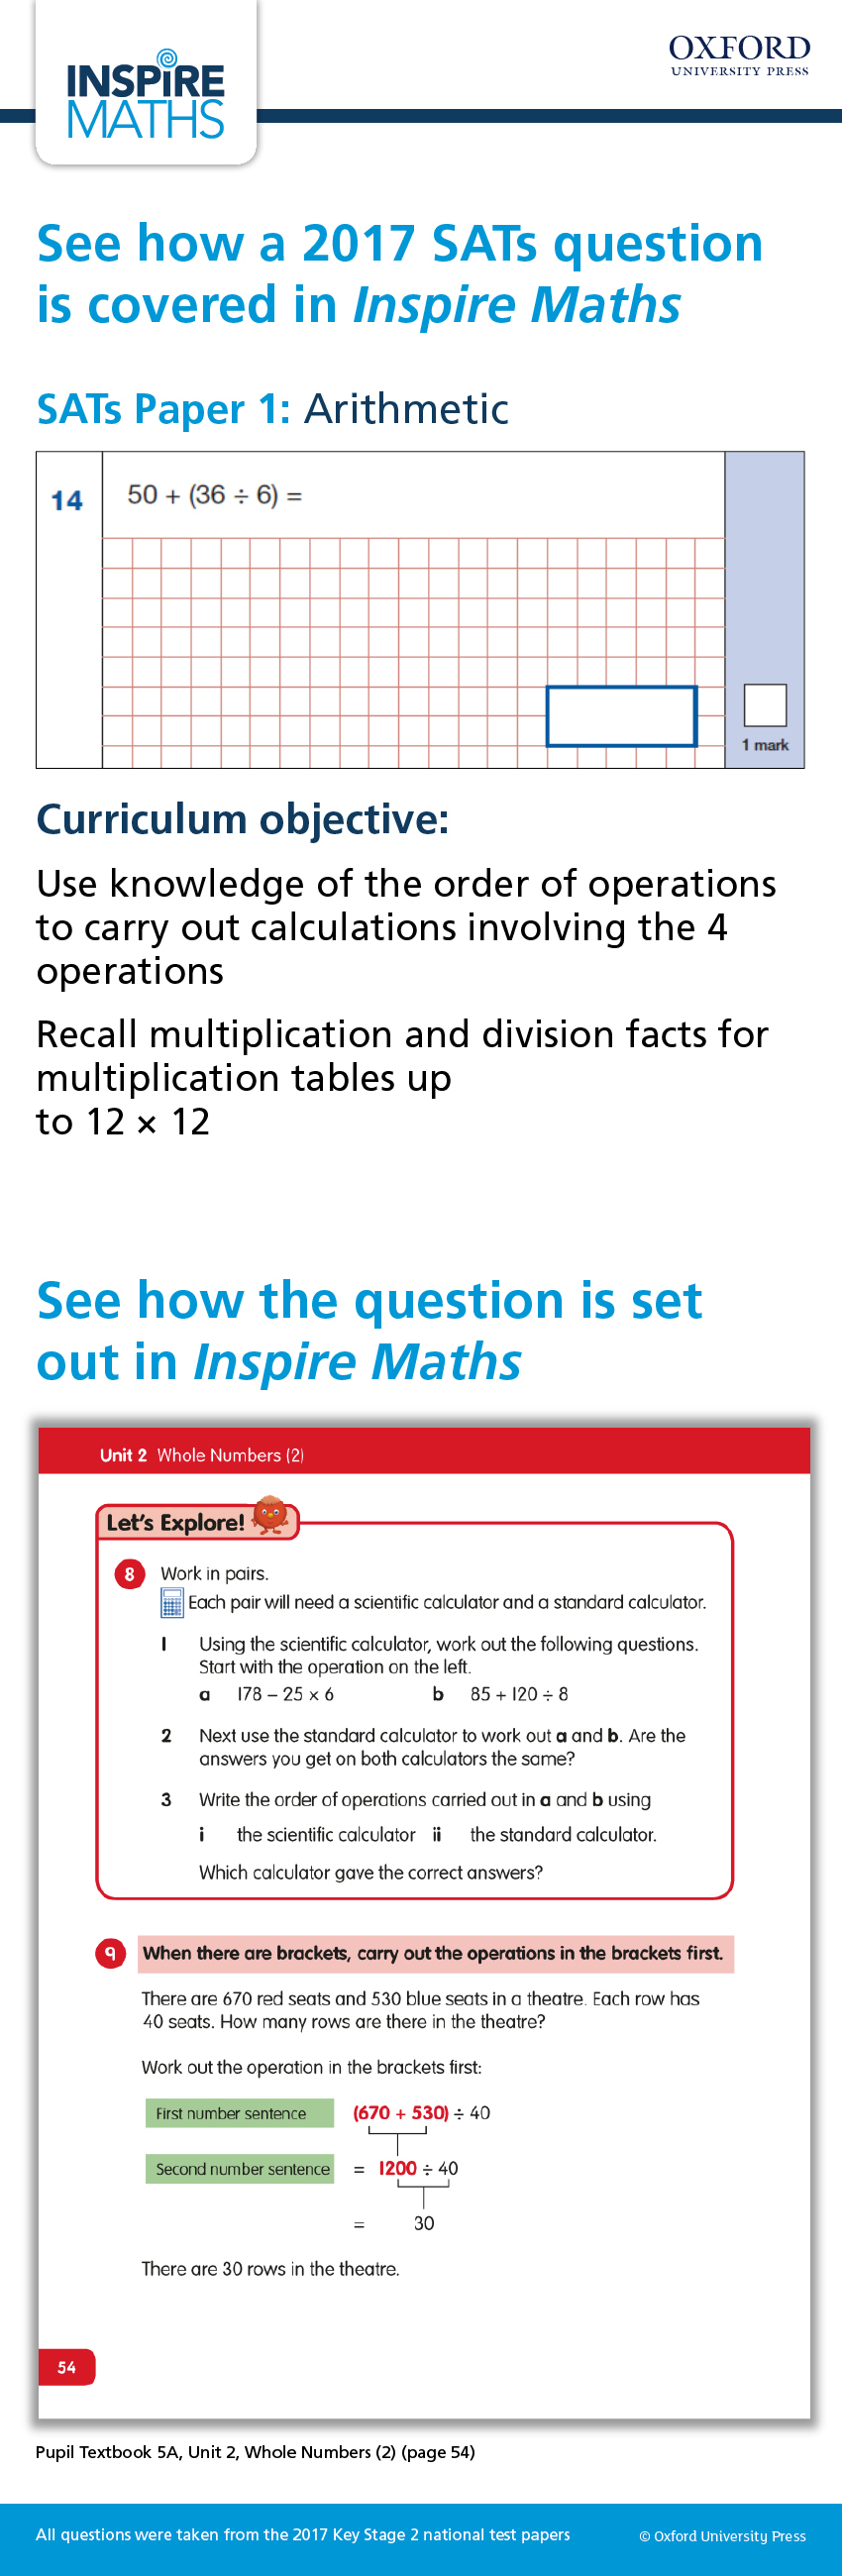 See how a 2017 SATs question is covered in an Inspire Maths textbook ...